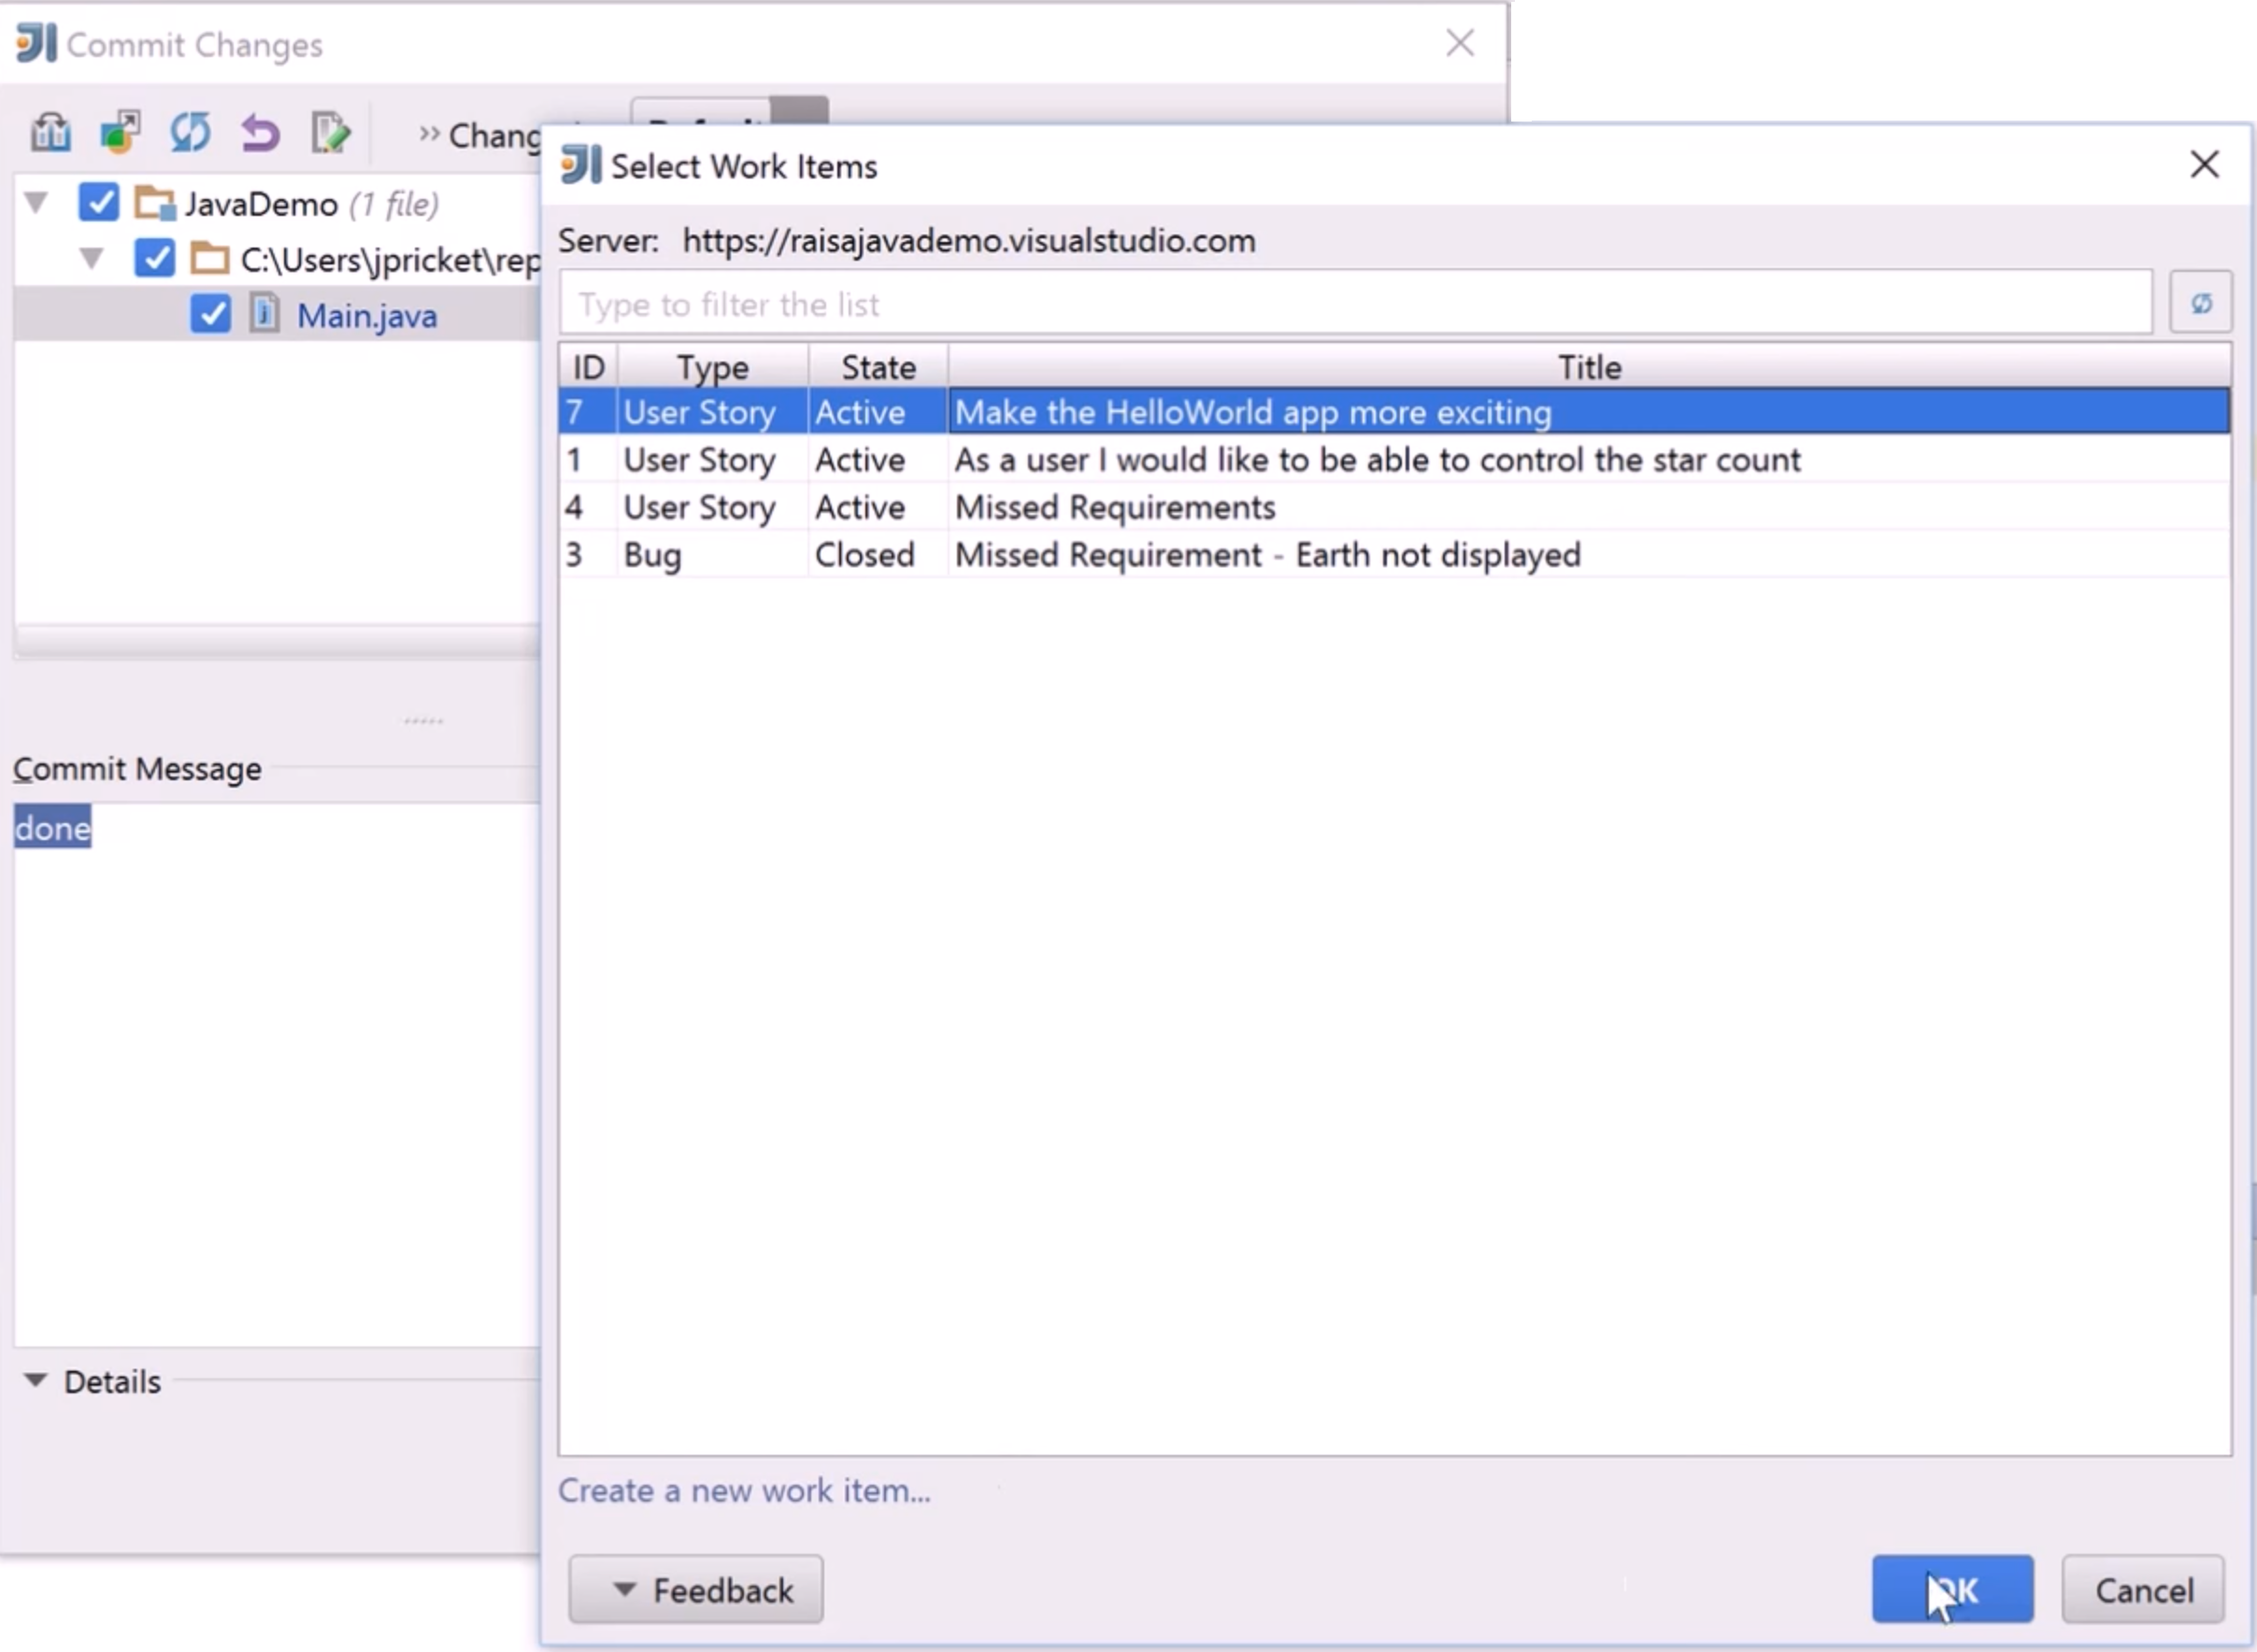 Work Item Integration for IntelliJ and Android Studio